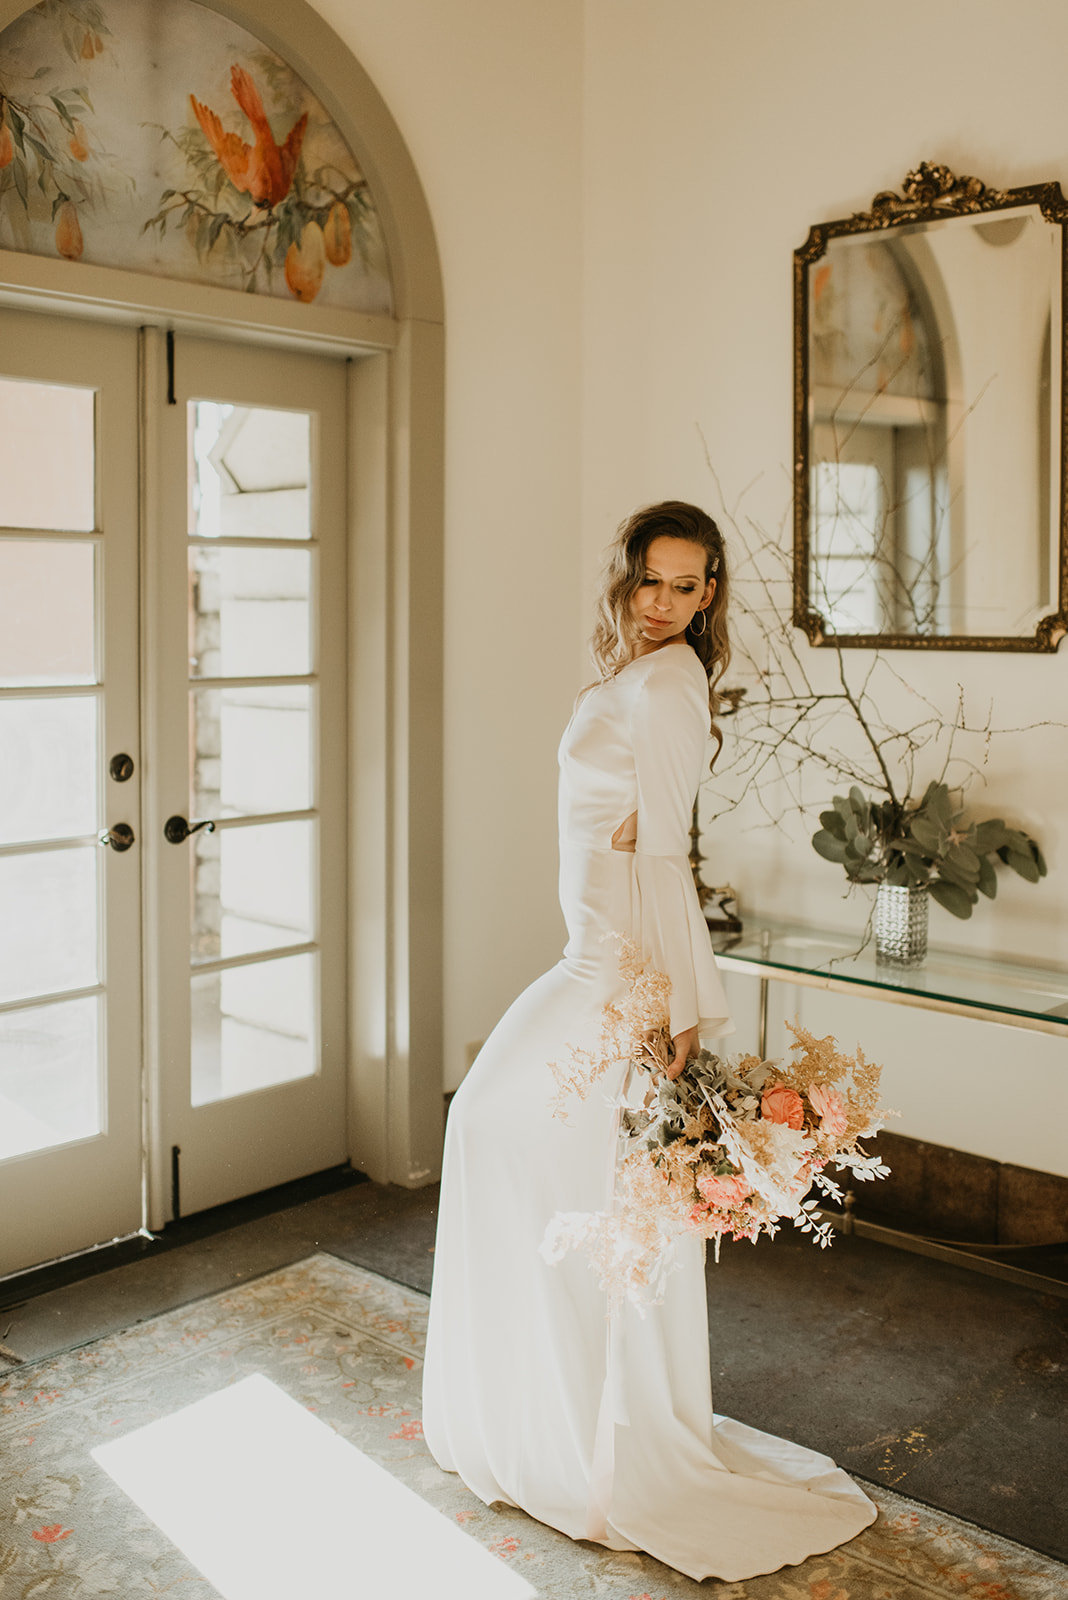 Britty + Beau - Elopement - The Ruins_ Seattle_ WA - Kamra Fuller Photography - Runaway With Me Elopement Collective-172